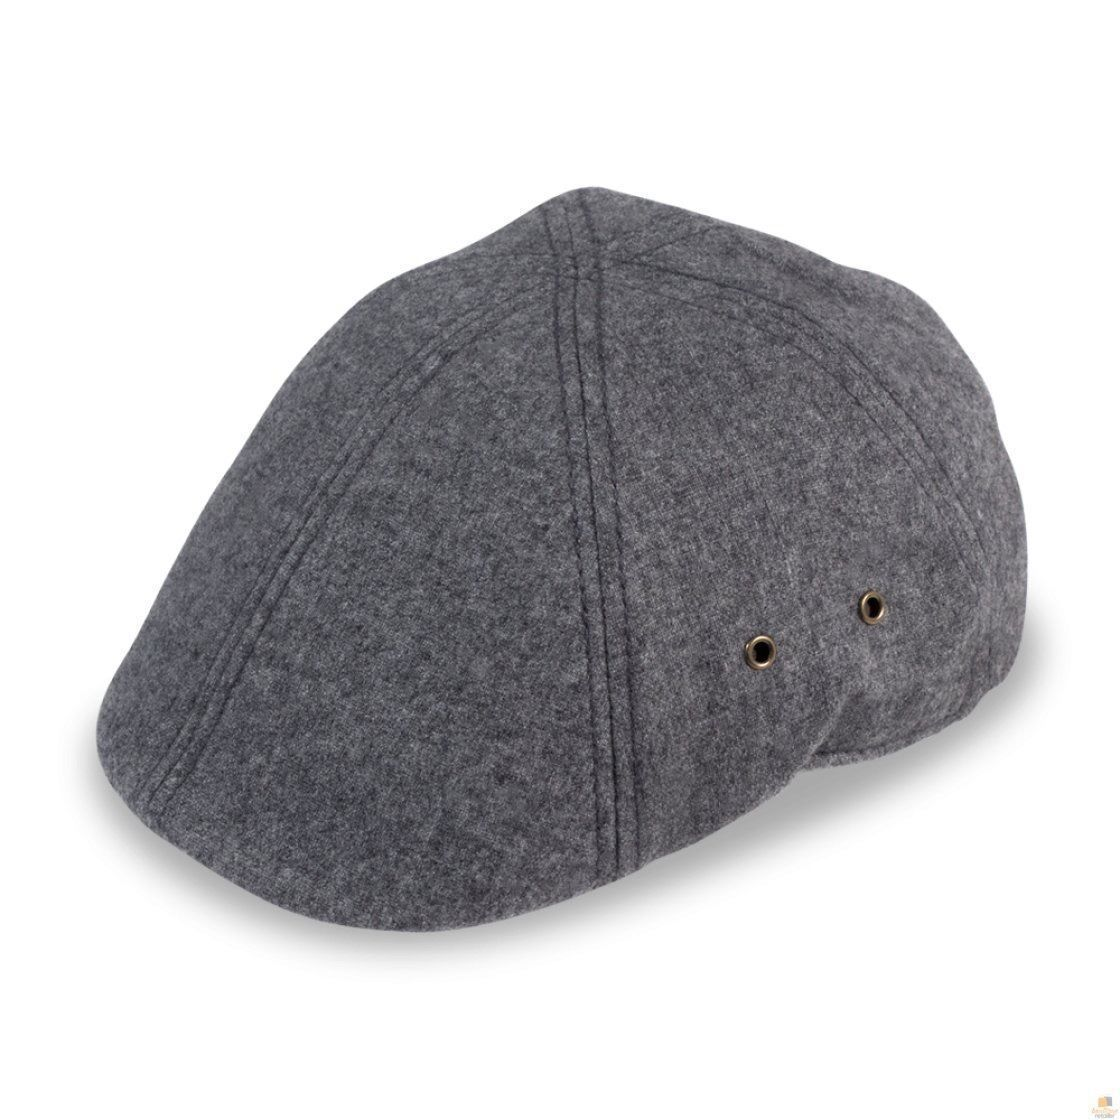 9f72065b0e6 GOORIN BROTHERS Haight St Wool Blend Ivy Flat Cap Hat Bros 103-6021 Classic